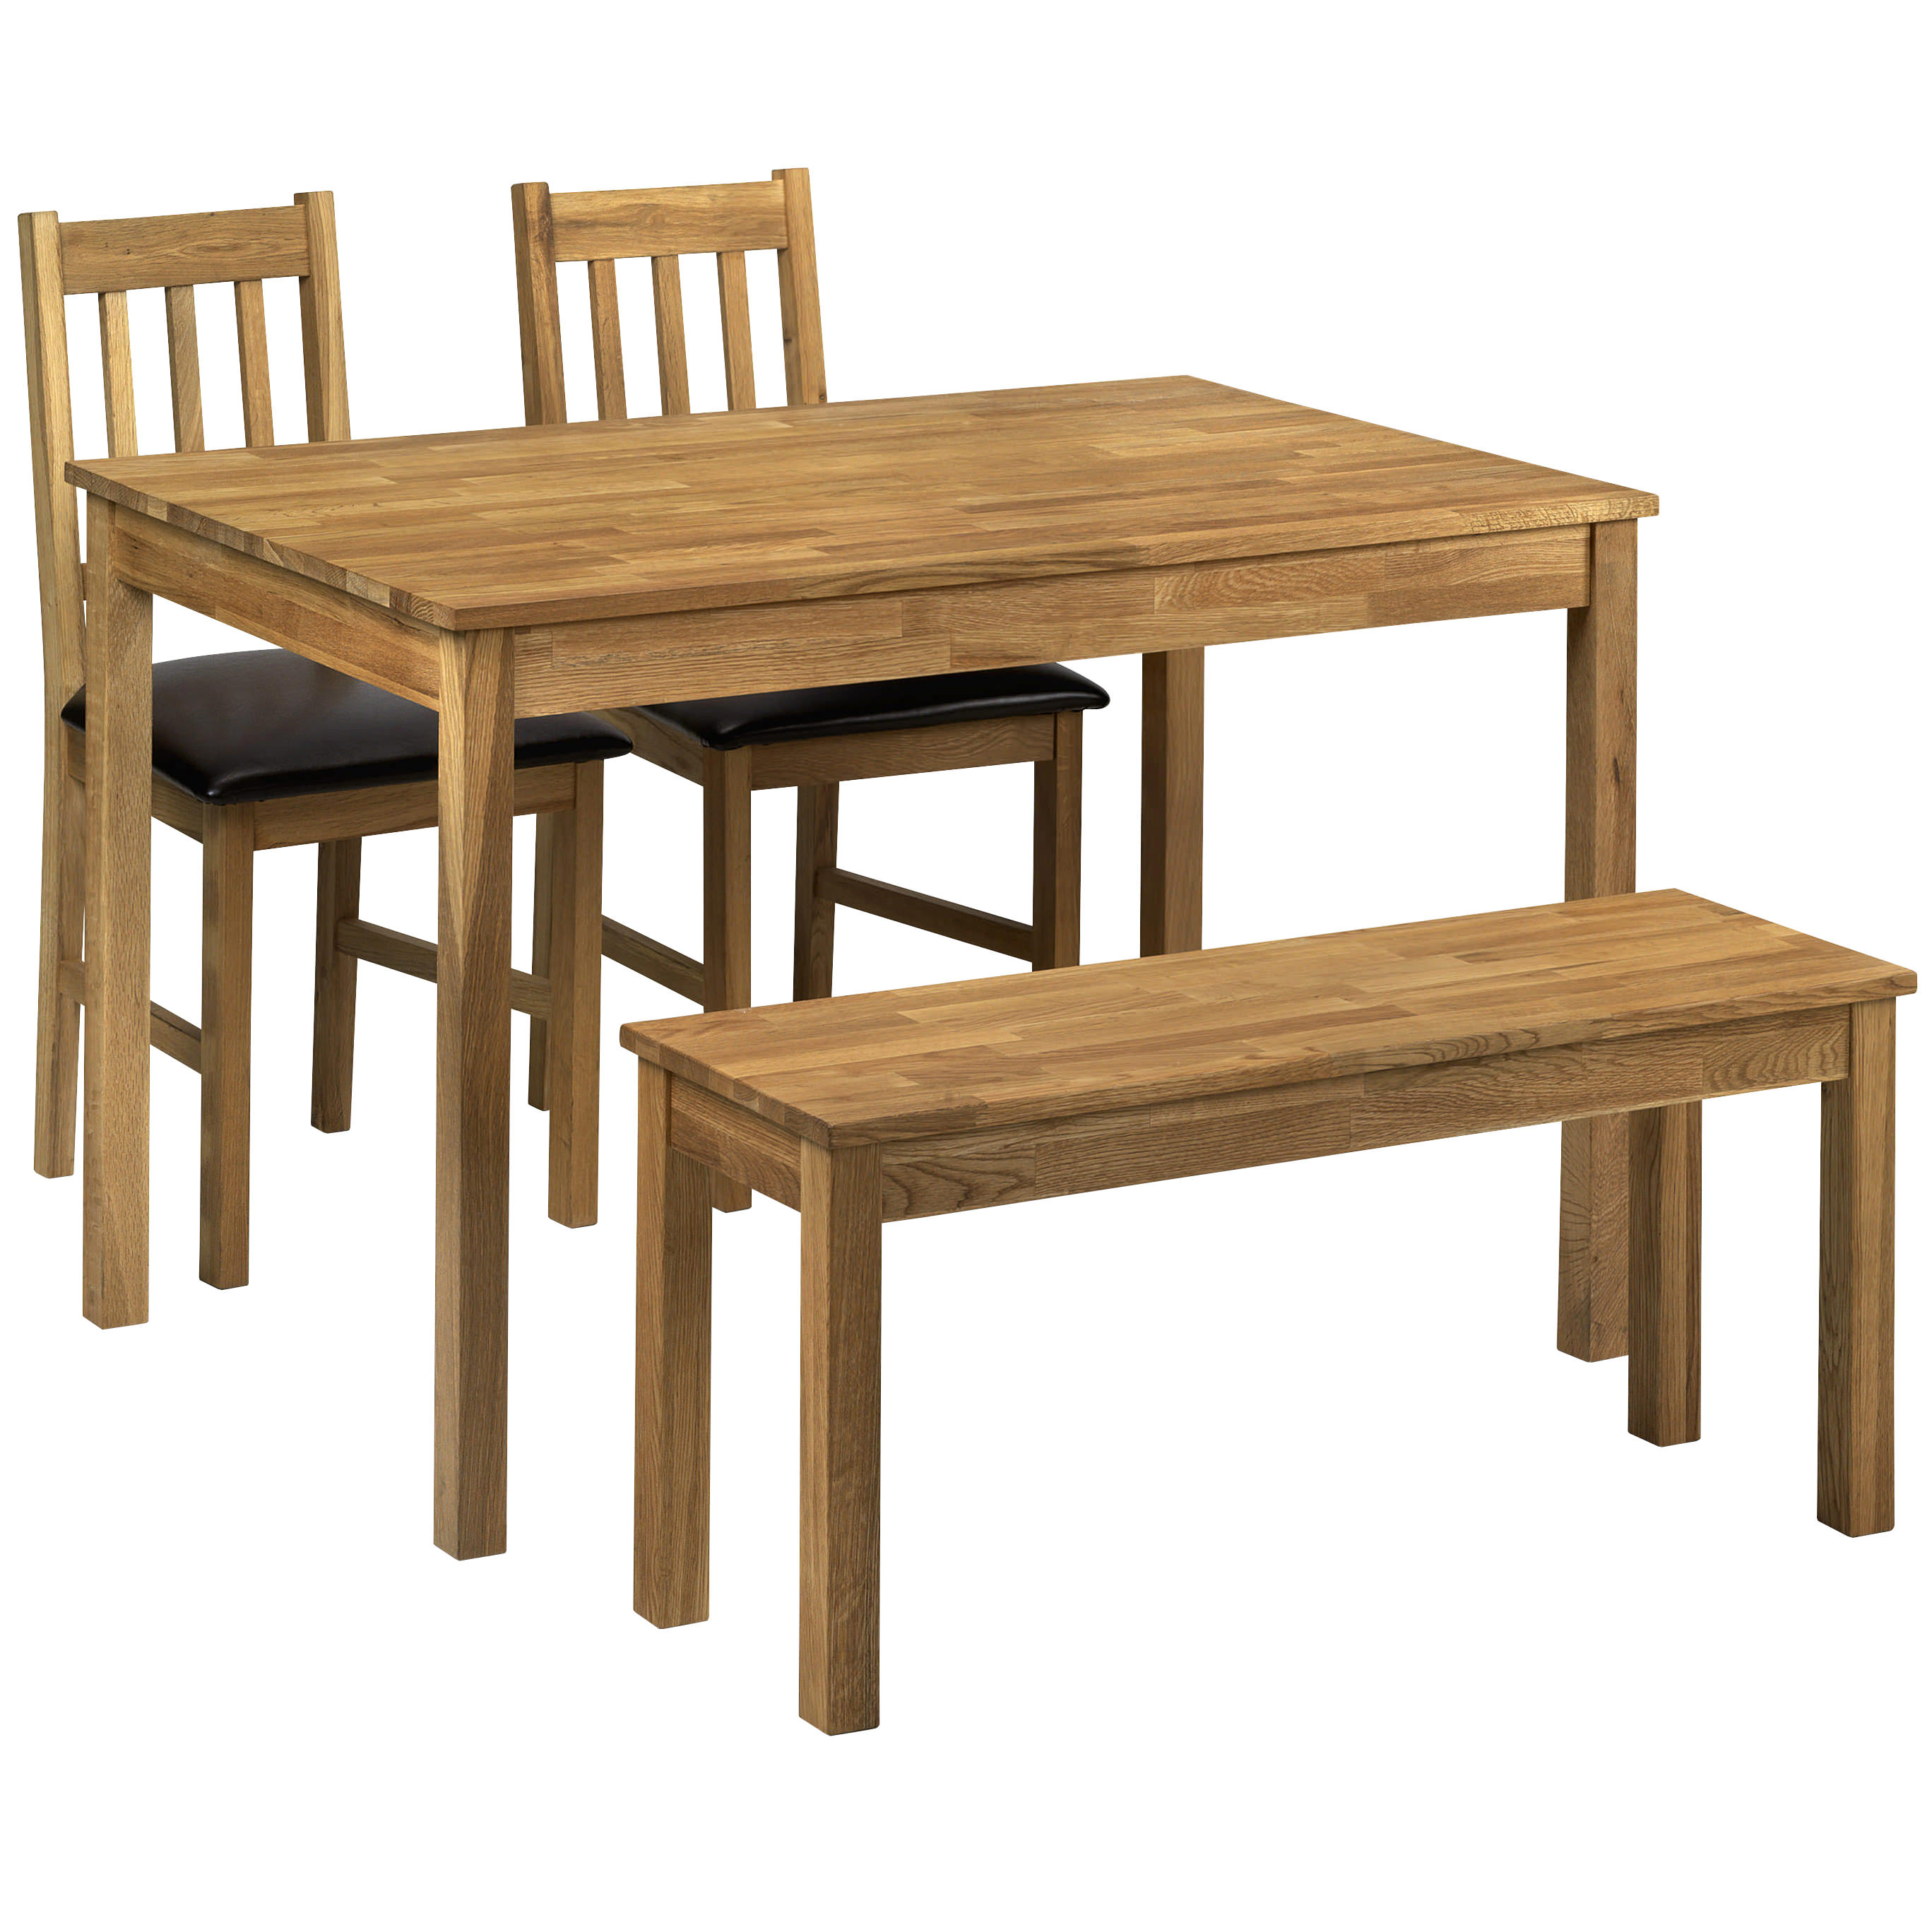 Description solid american white oak dining table and chair set with brown faux leather padded seats this rectangle shape dining set has a smooth oiled